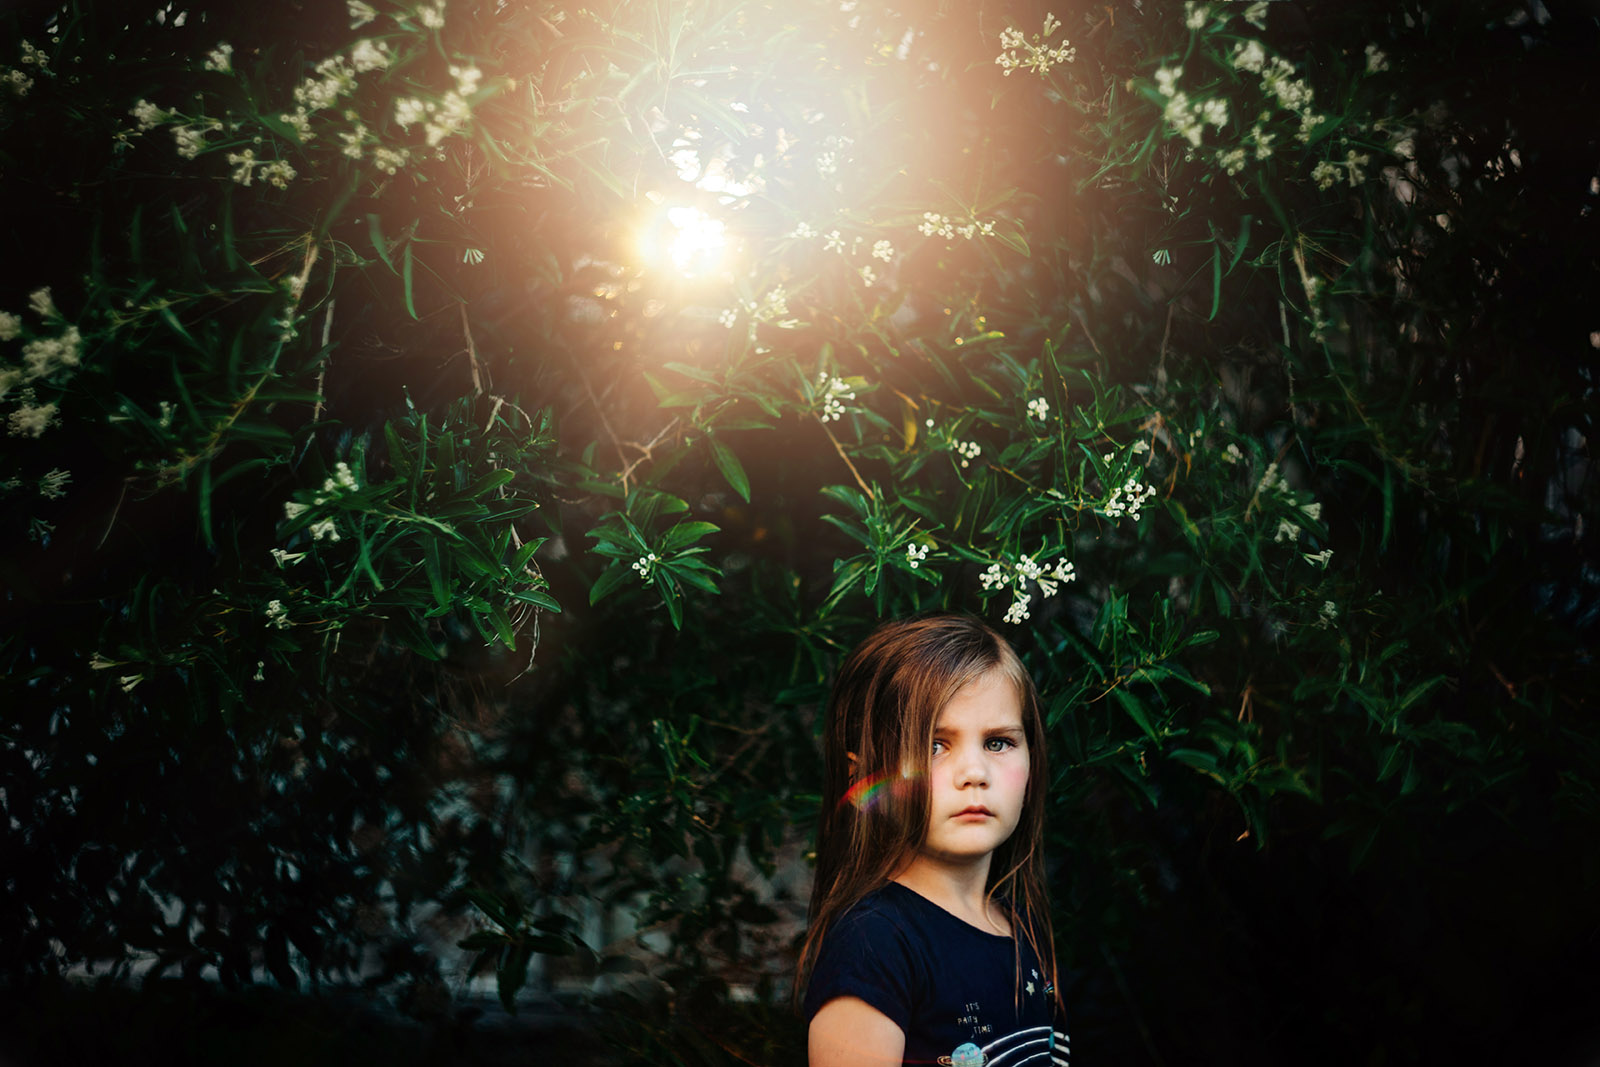 A light in the dark, photography as therapy